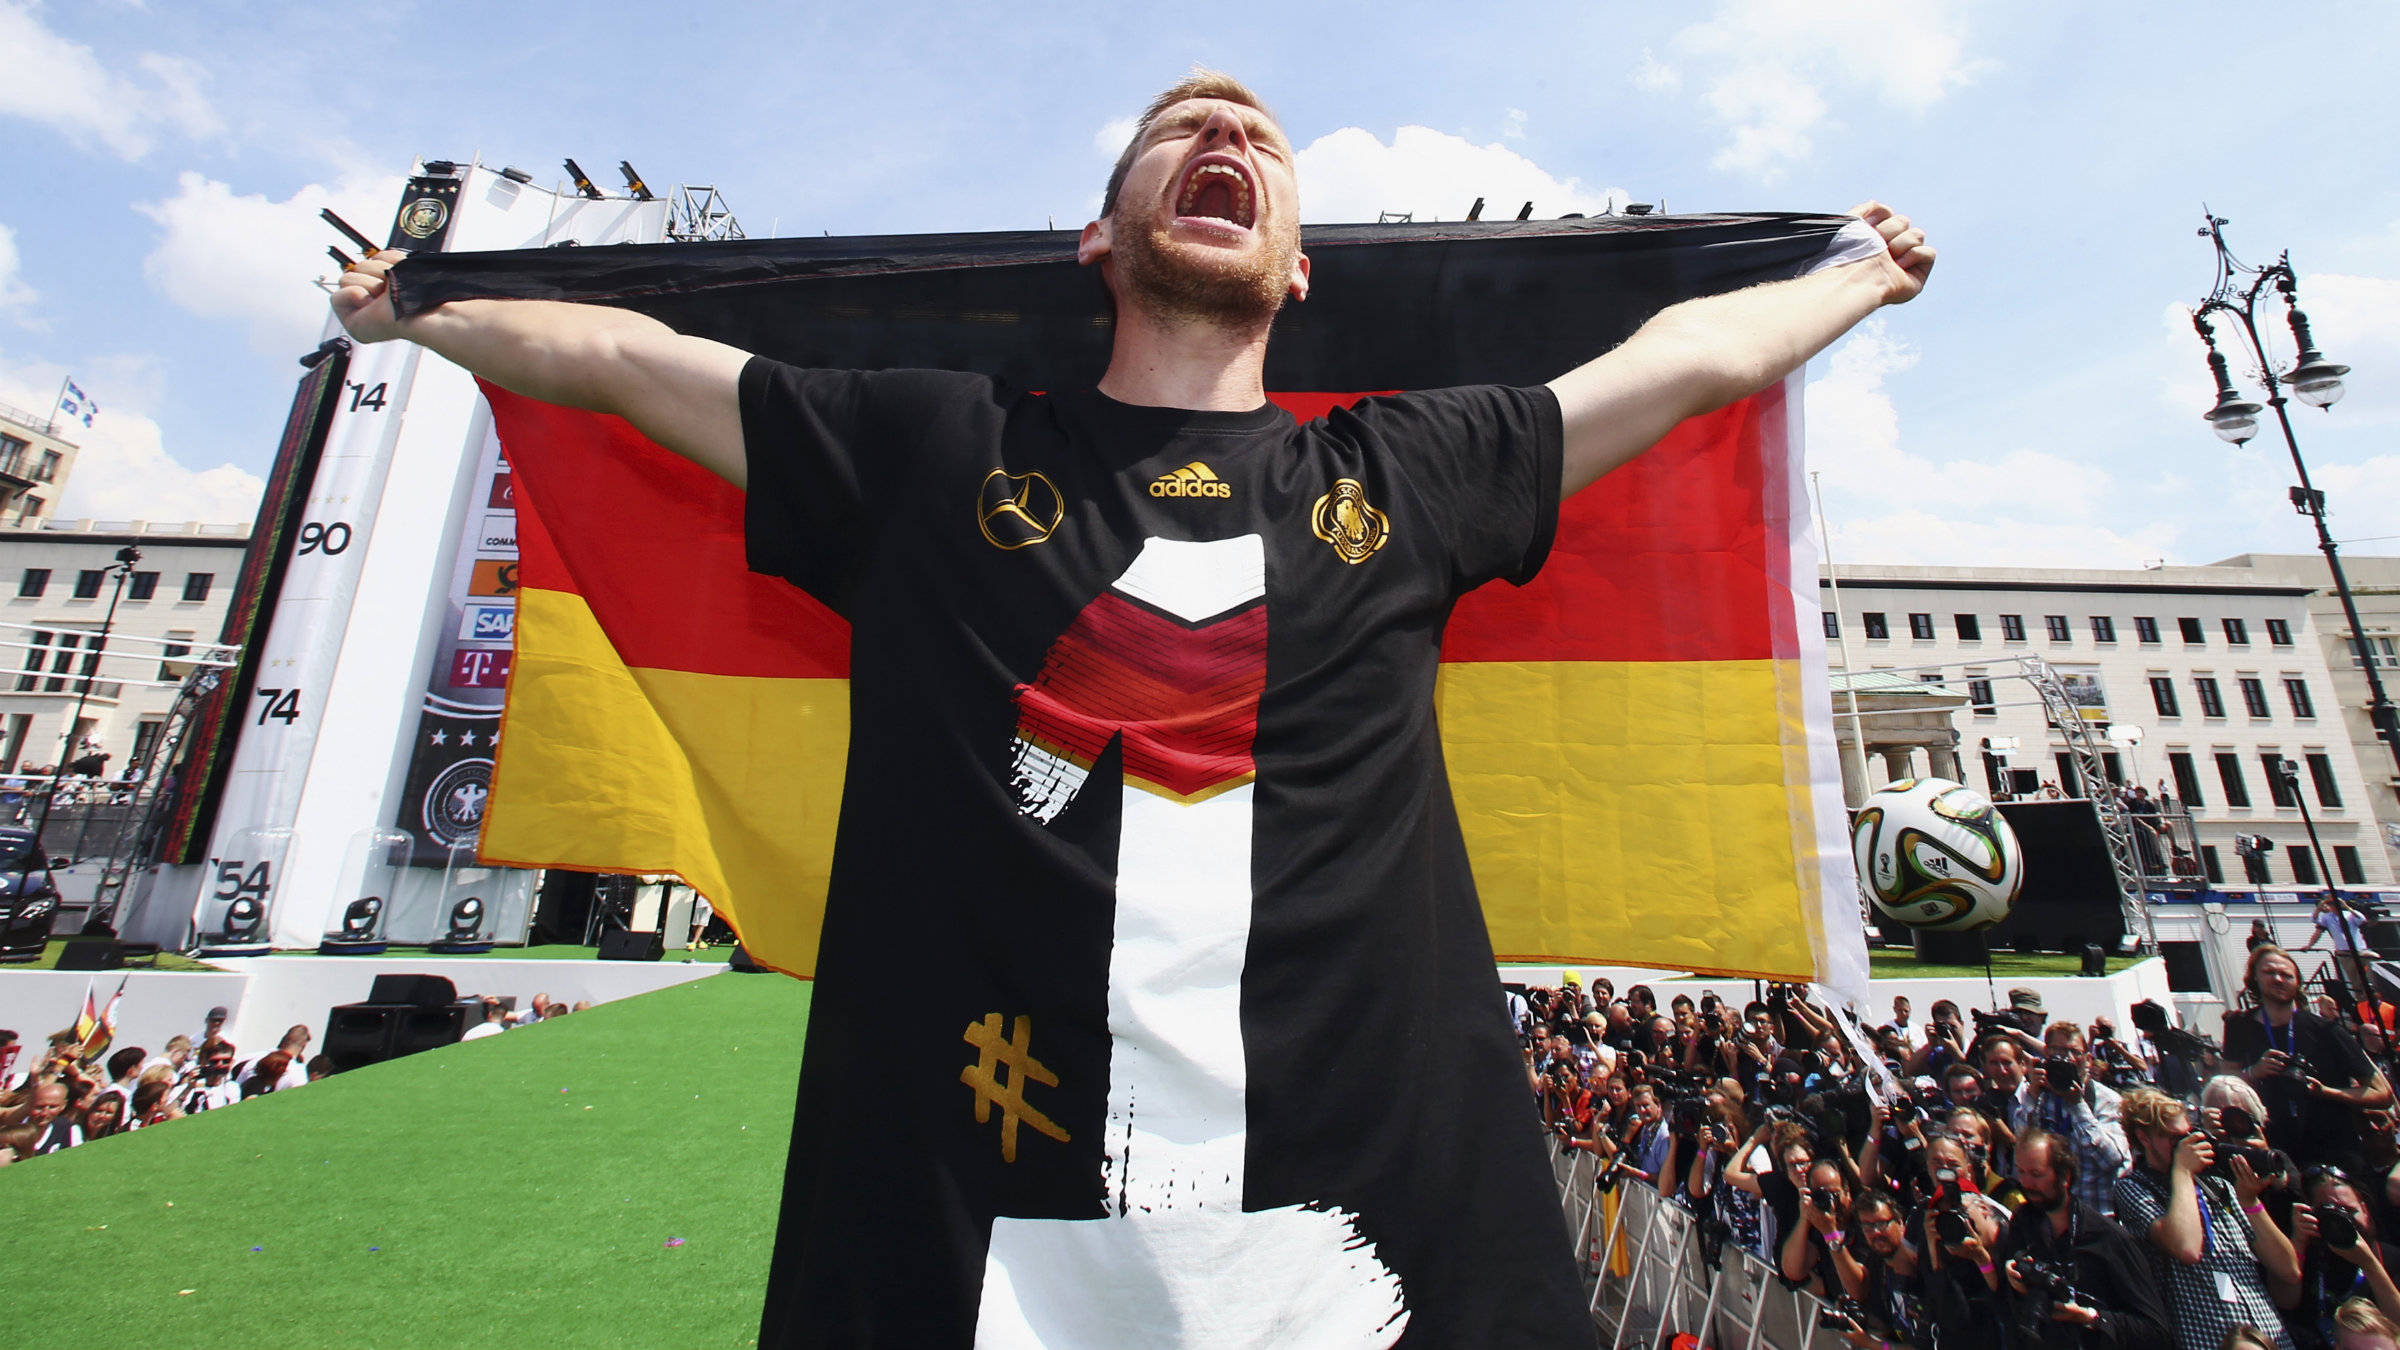 A German man holds his country's flag.